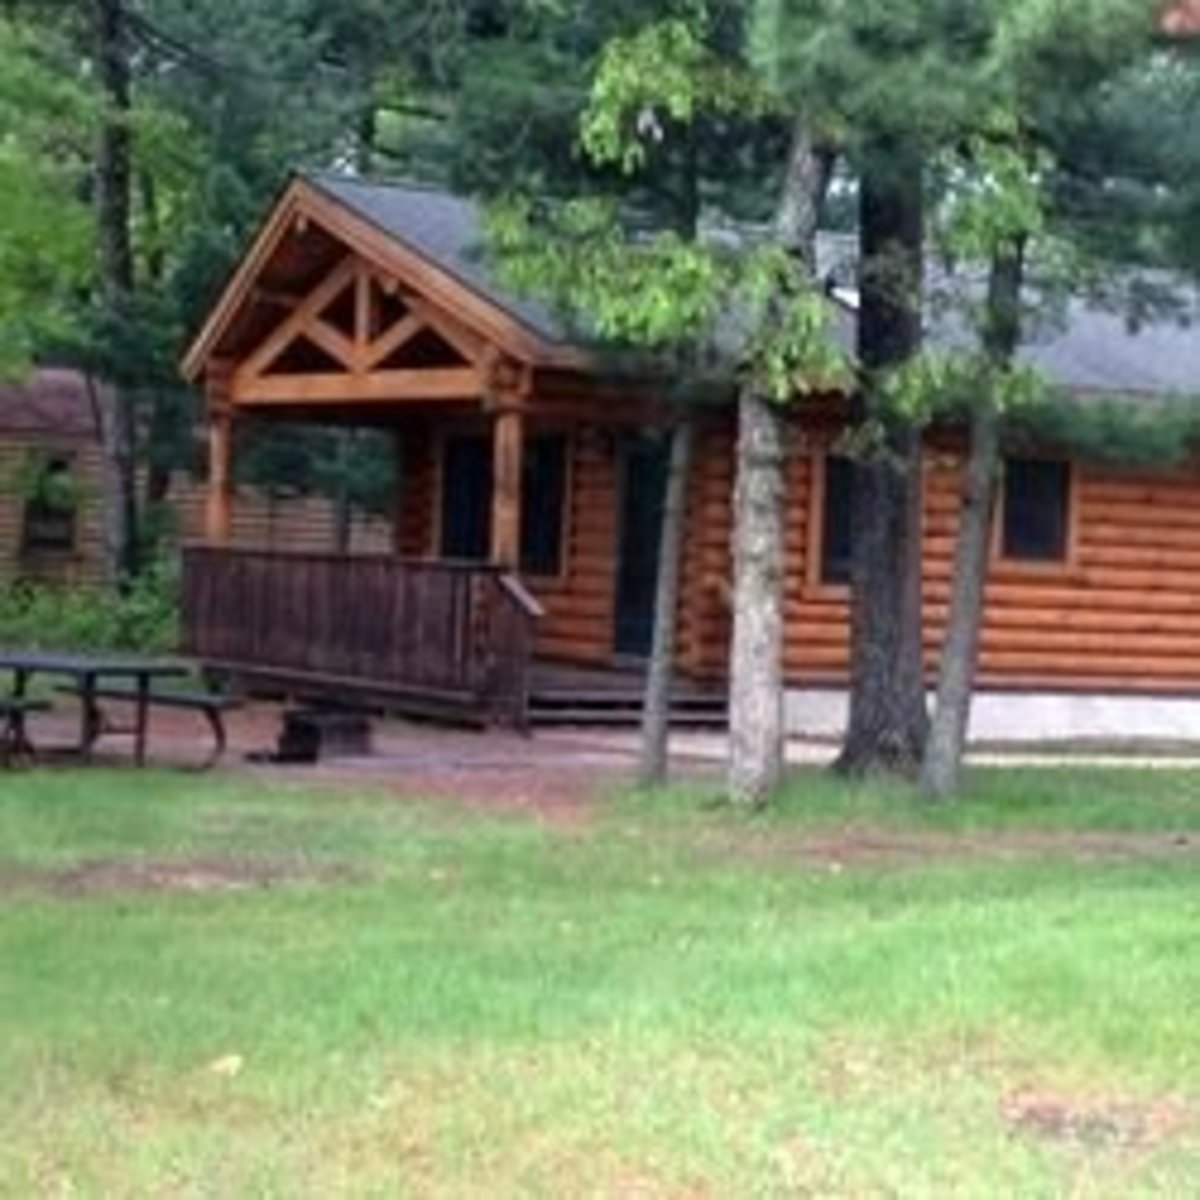 Pine View Campground Fort McCoy, WI